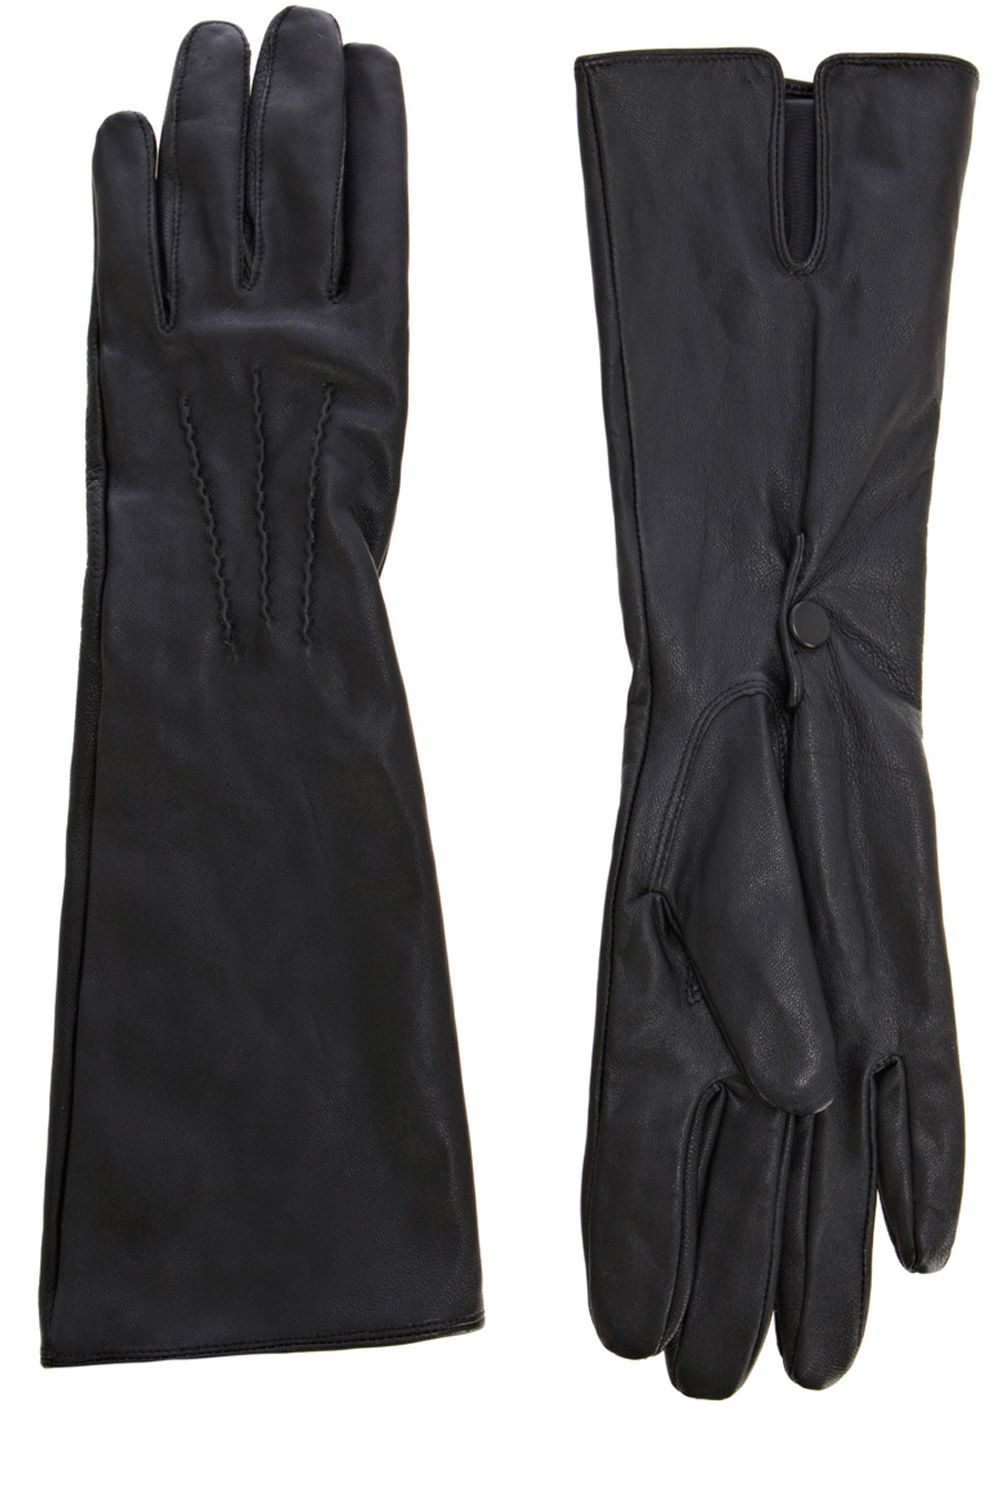 Longer length leather glove